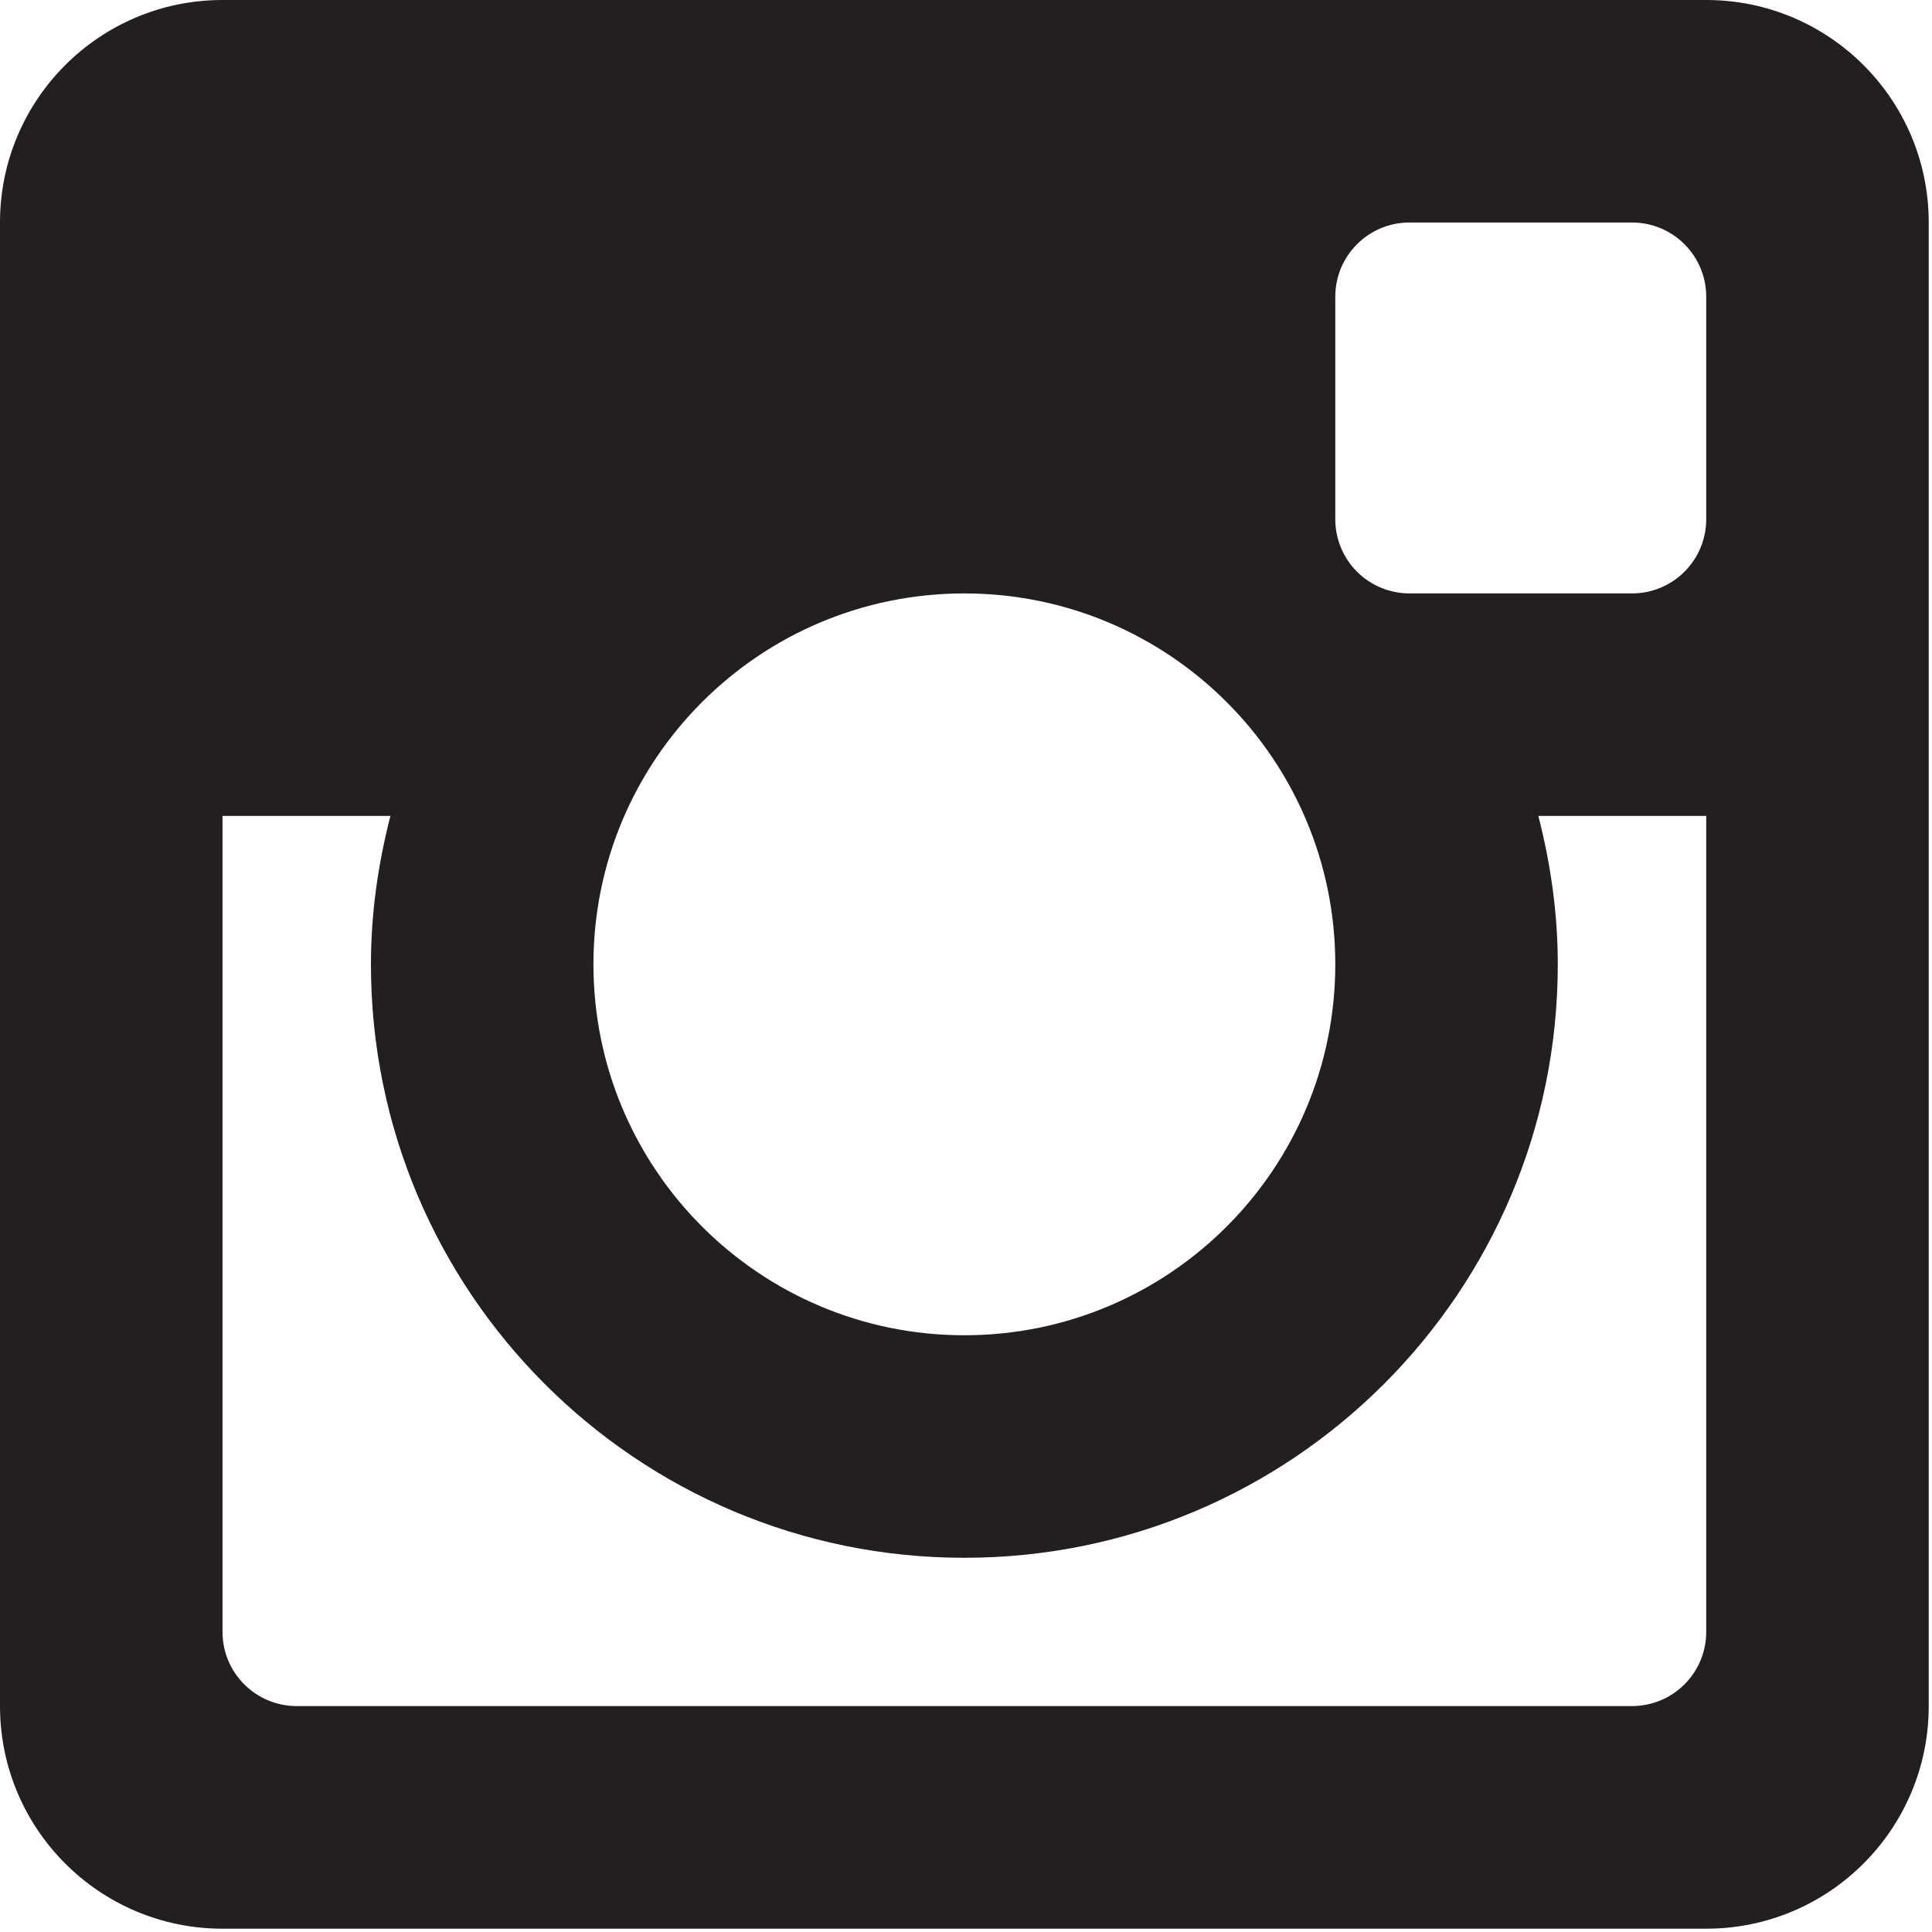 Square clipart camera. Instagram glyph logo png